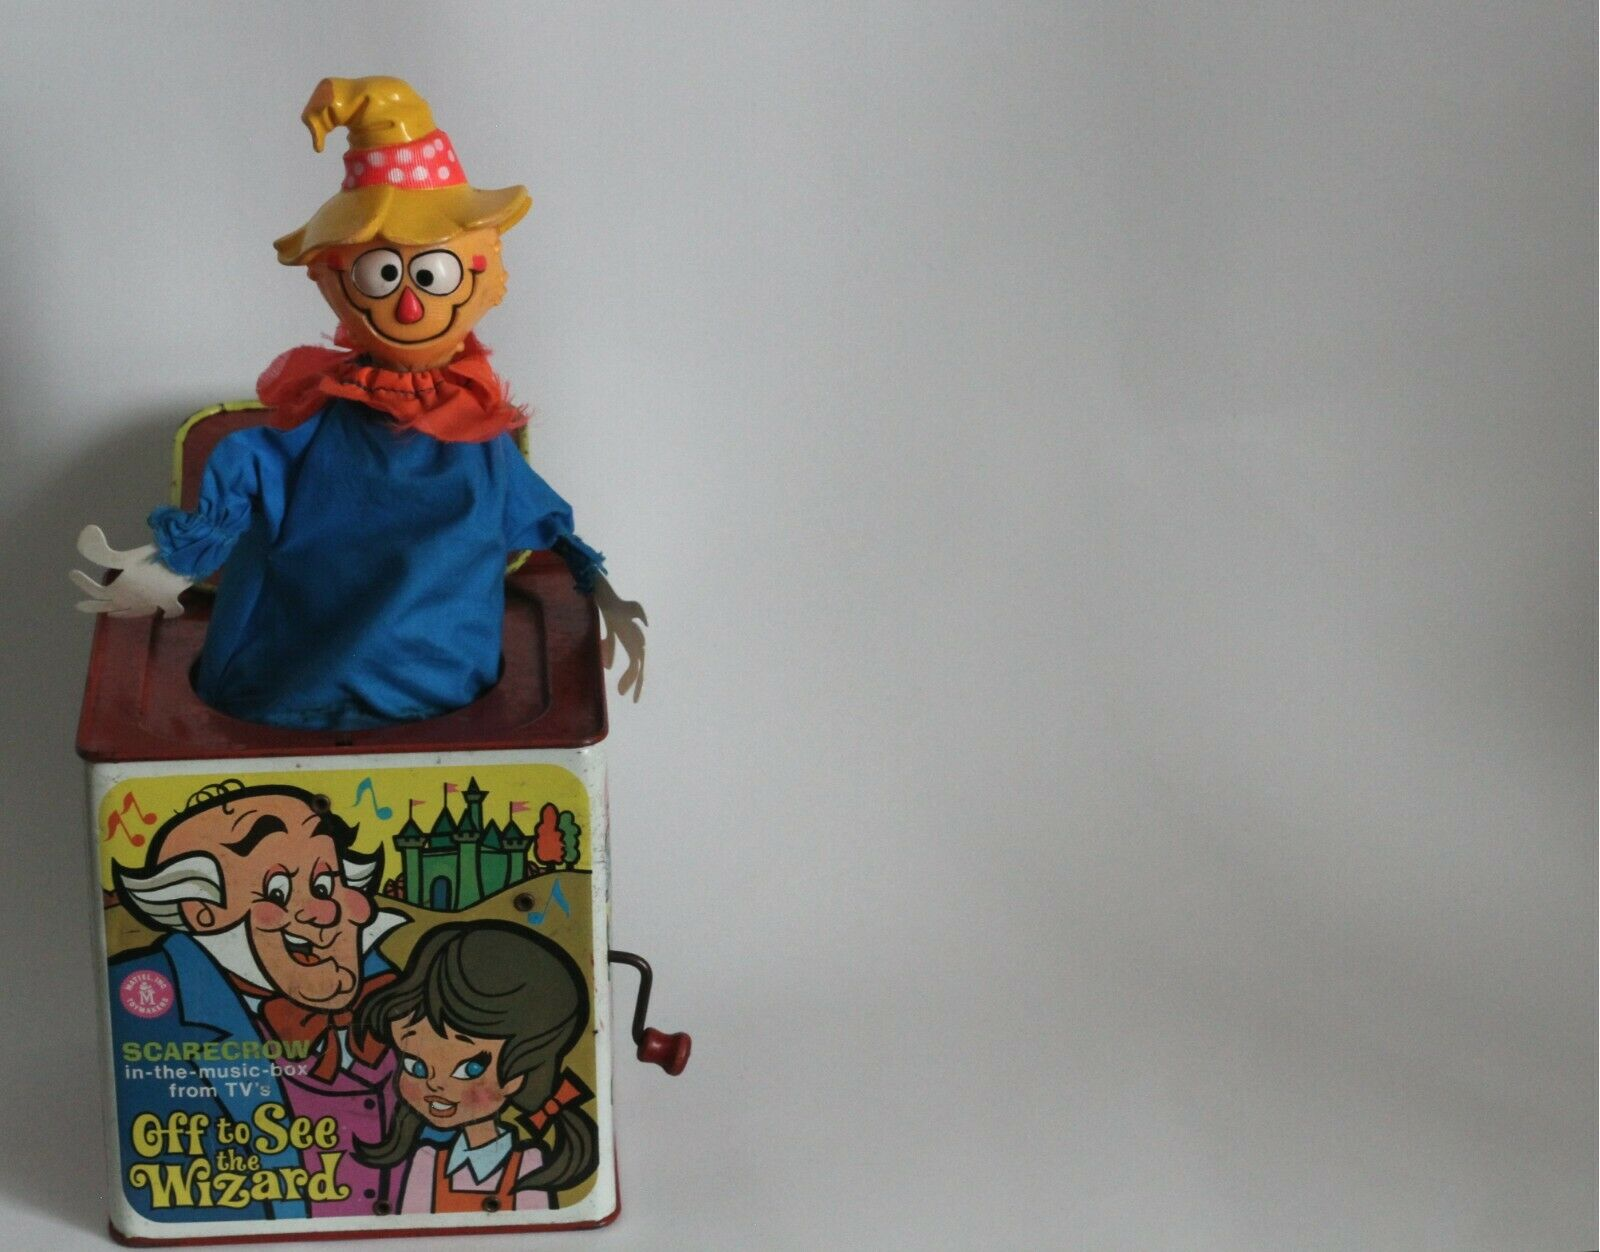 1967 Scarecrow in-the-music-box from Off to See the Wizard